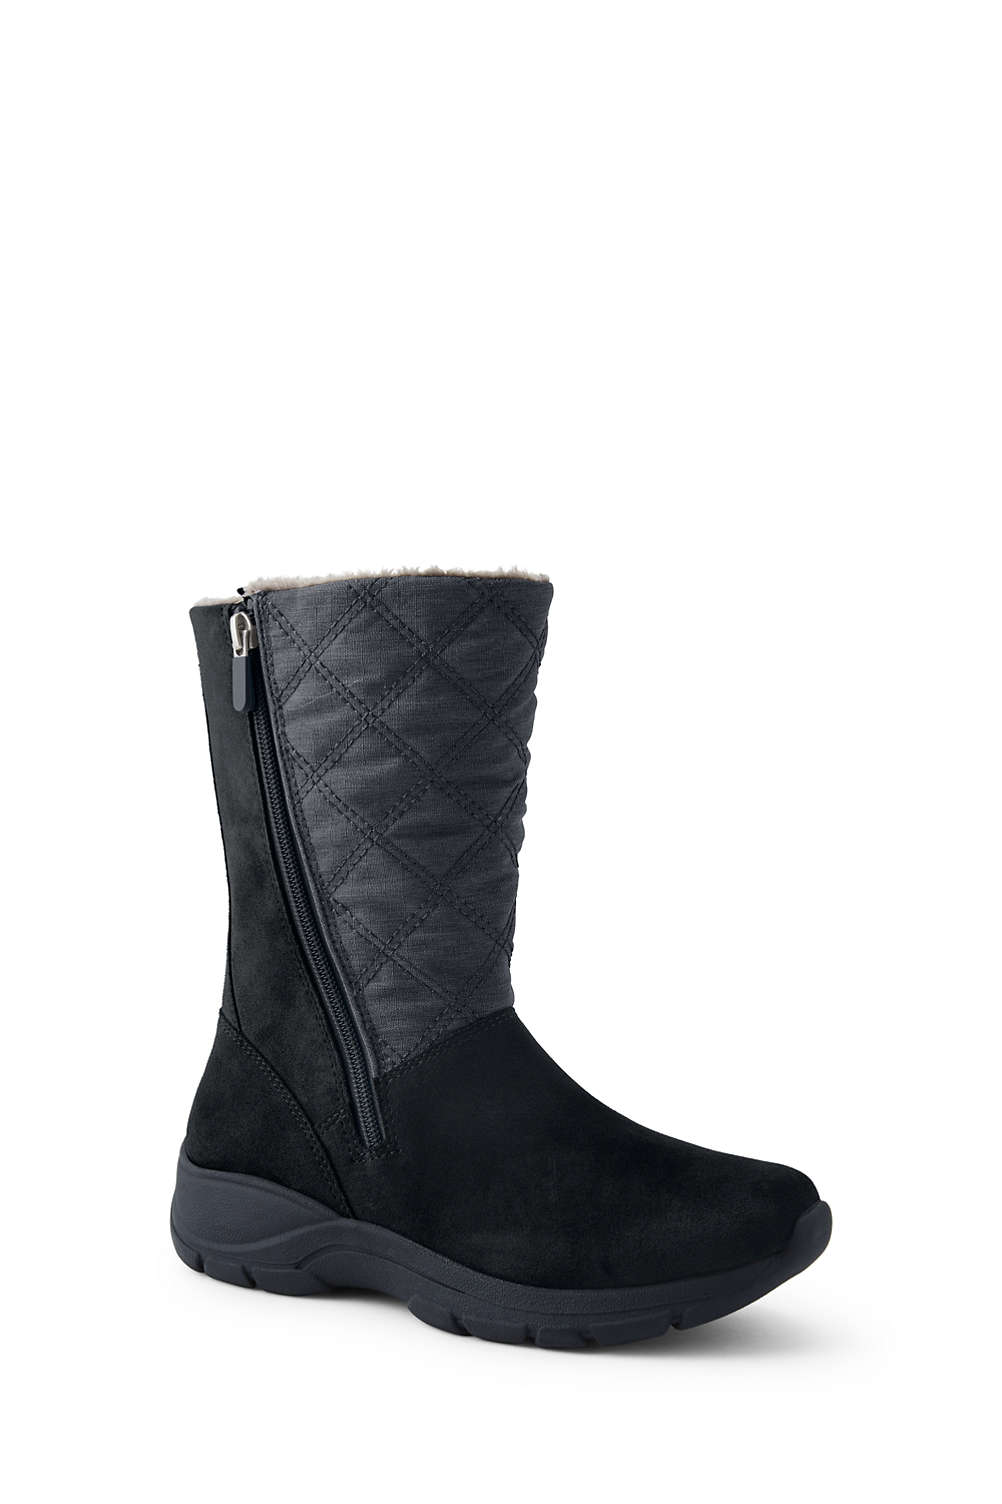 discount for sale fine craftsmanship hot sale Women's All Weather Winter Boots